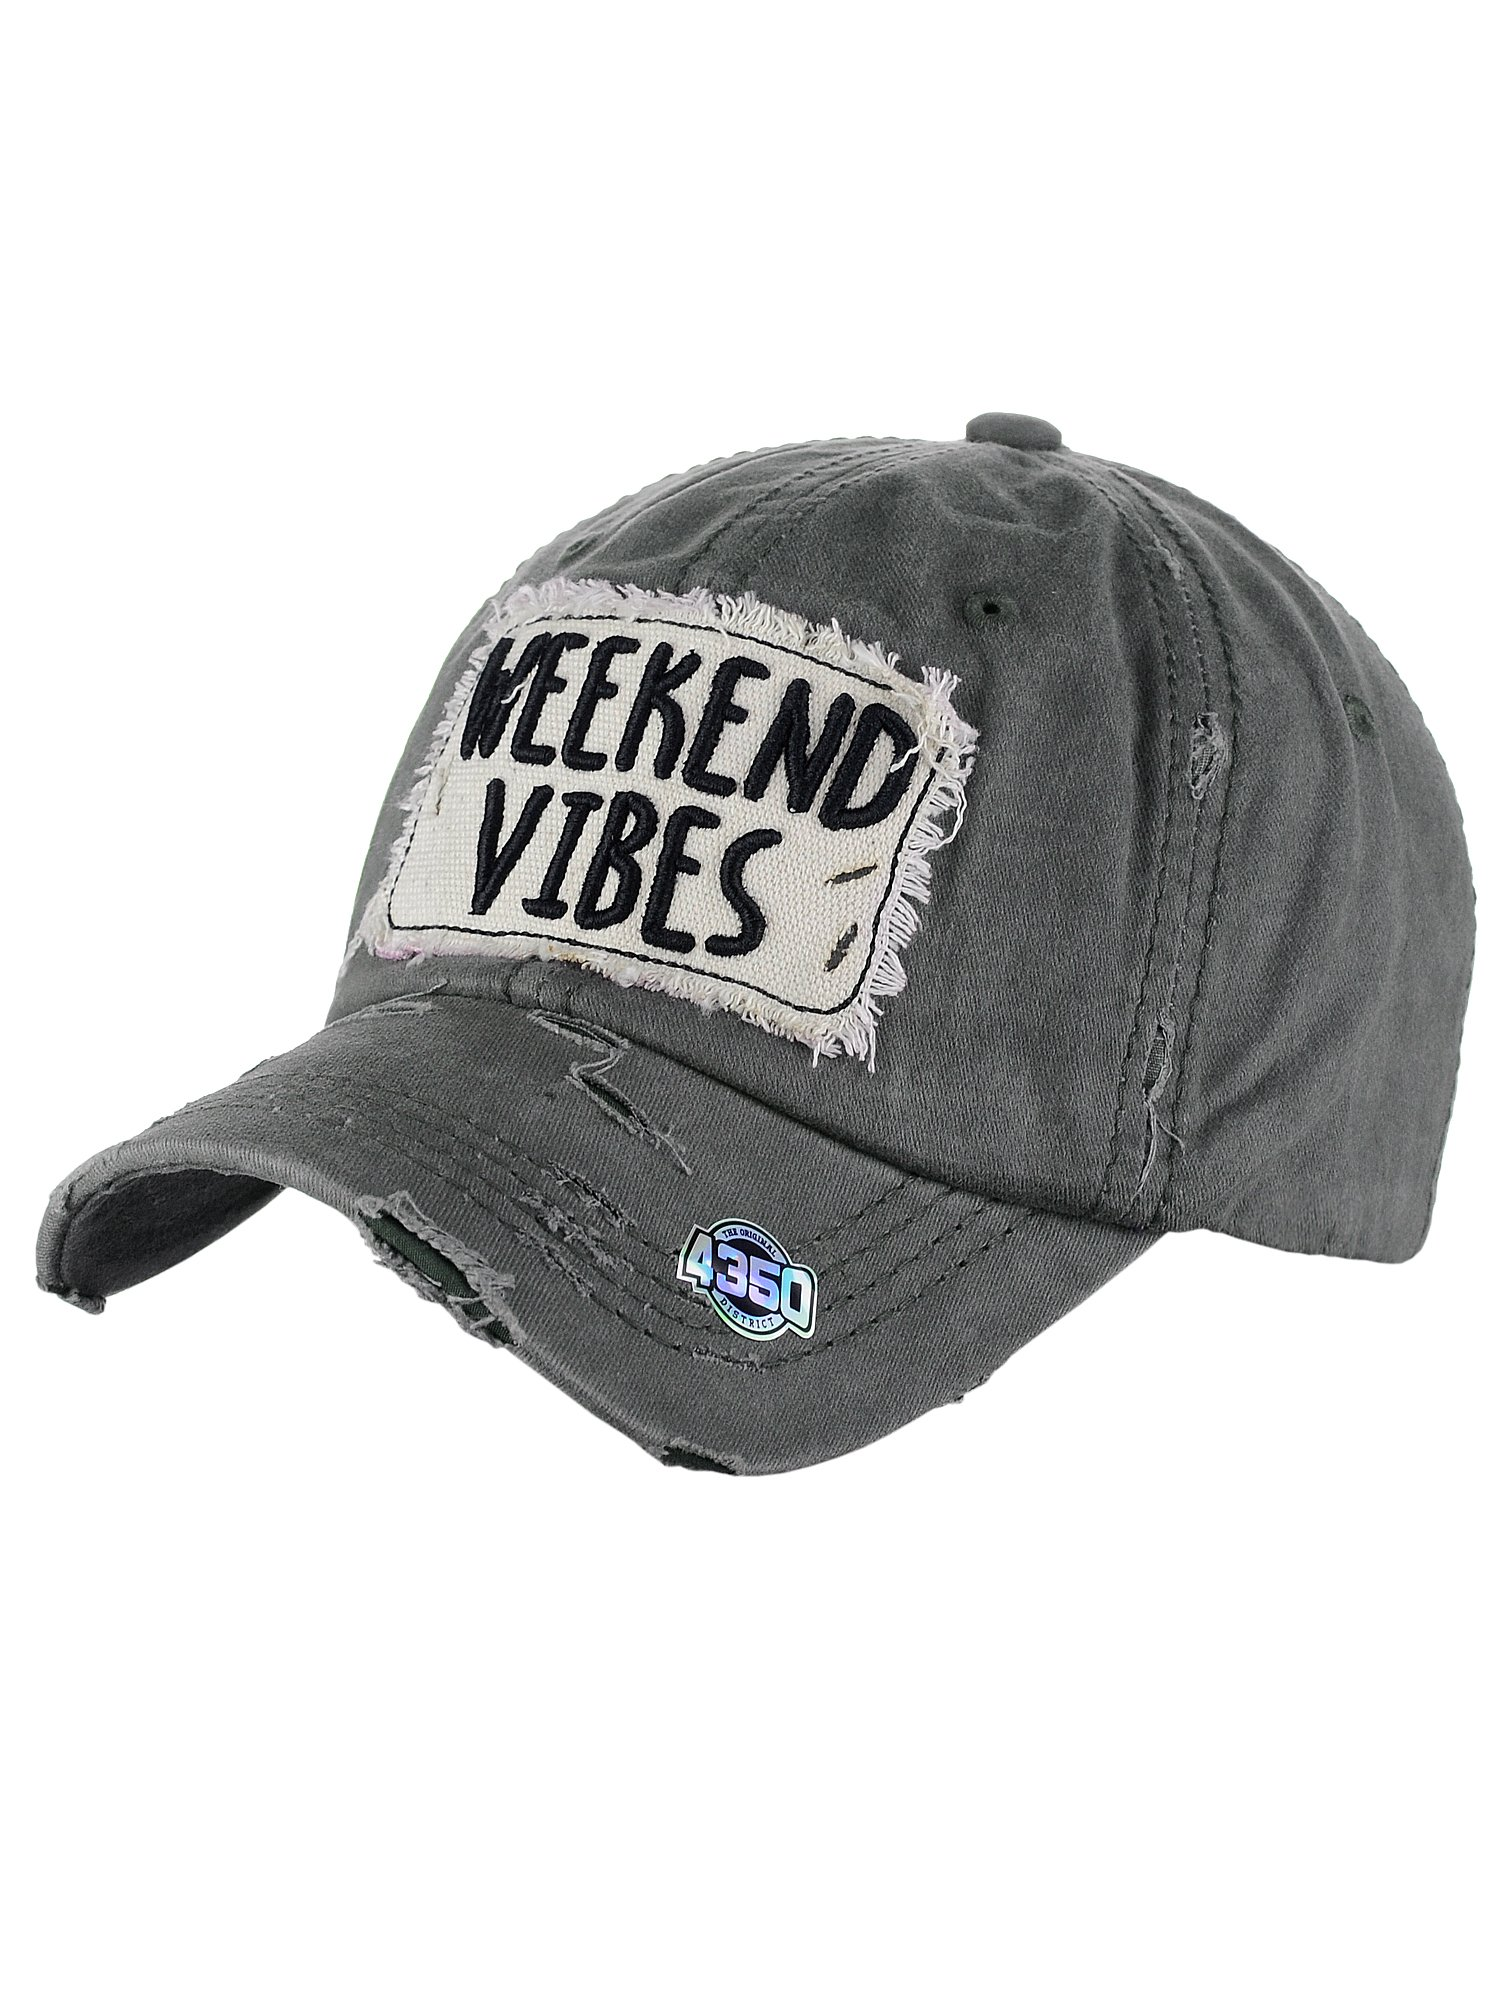 NYFASHION101 Women's Distressed Unconstructed Embroidered Baseball Cap Dad Hat, Weekend Vibes, Dk Gray